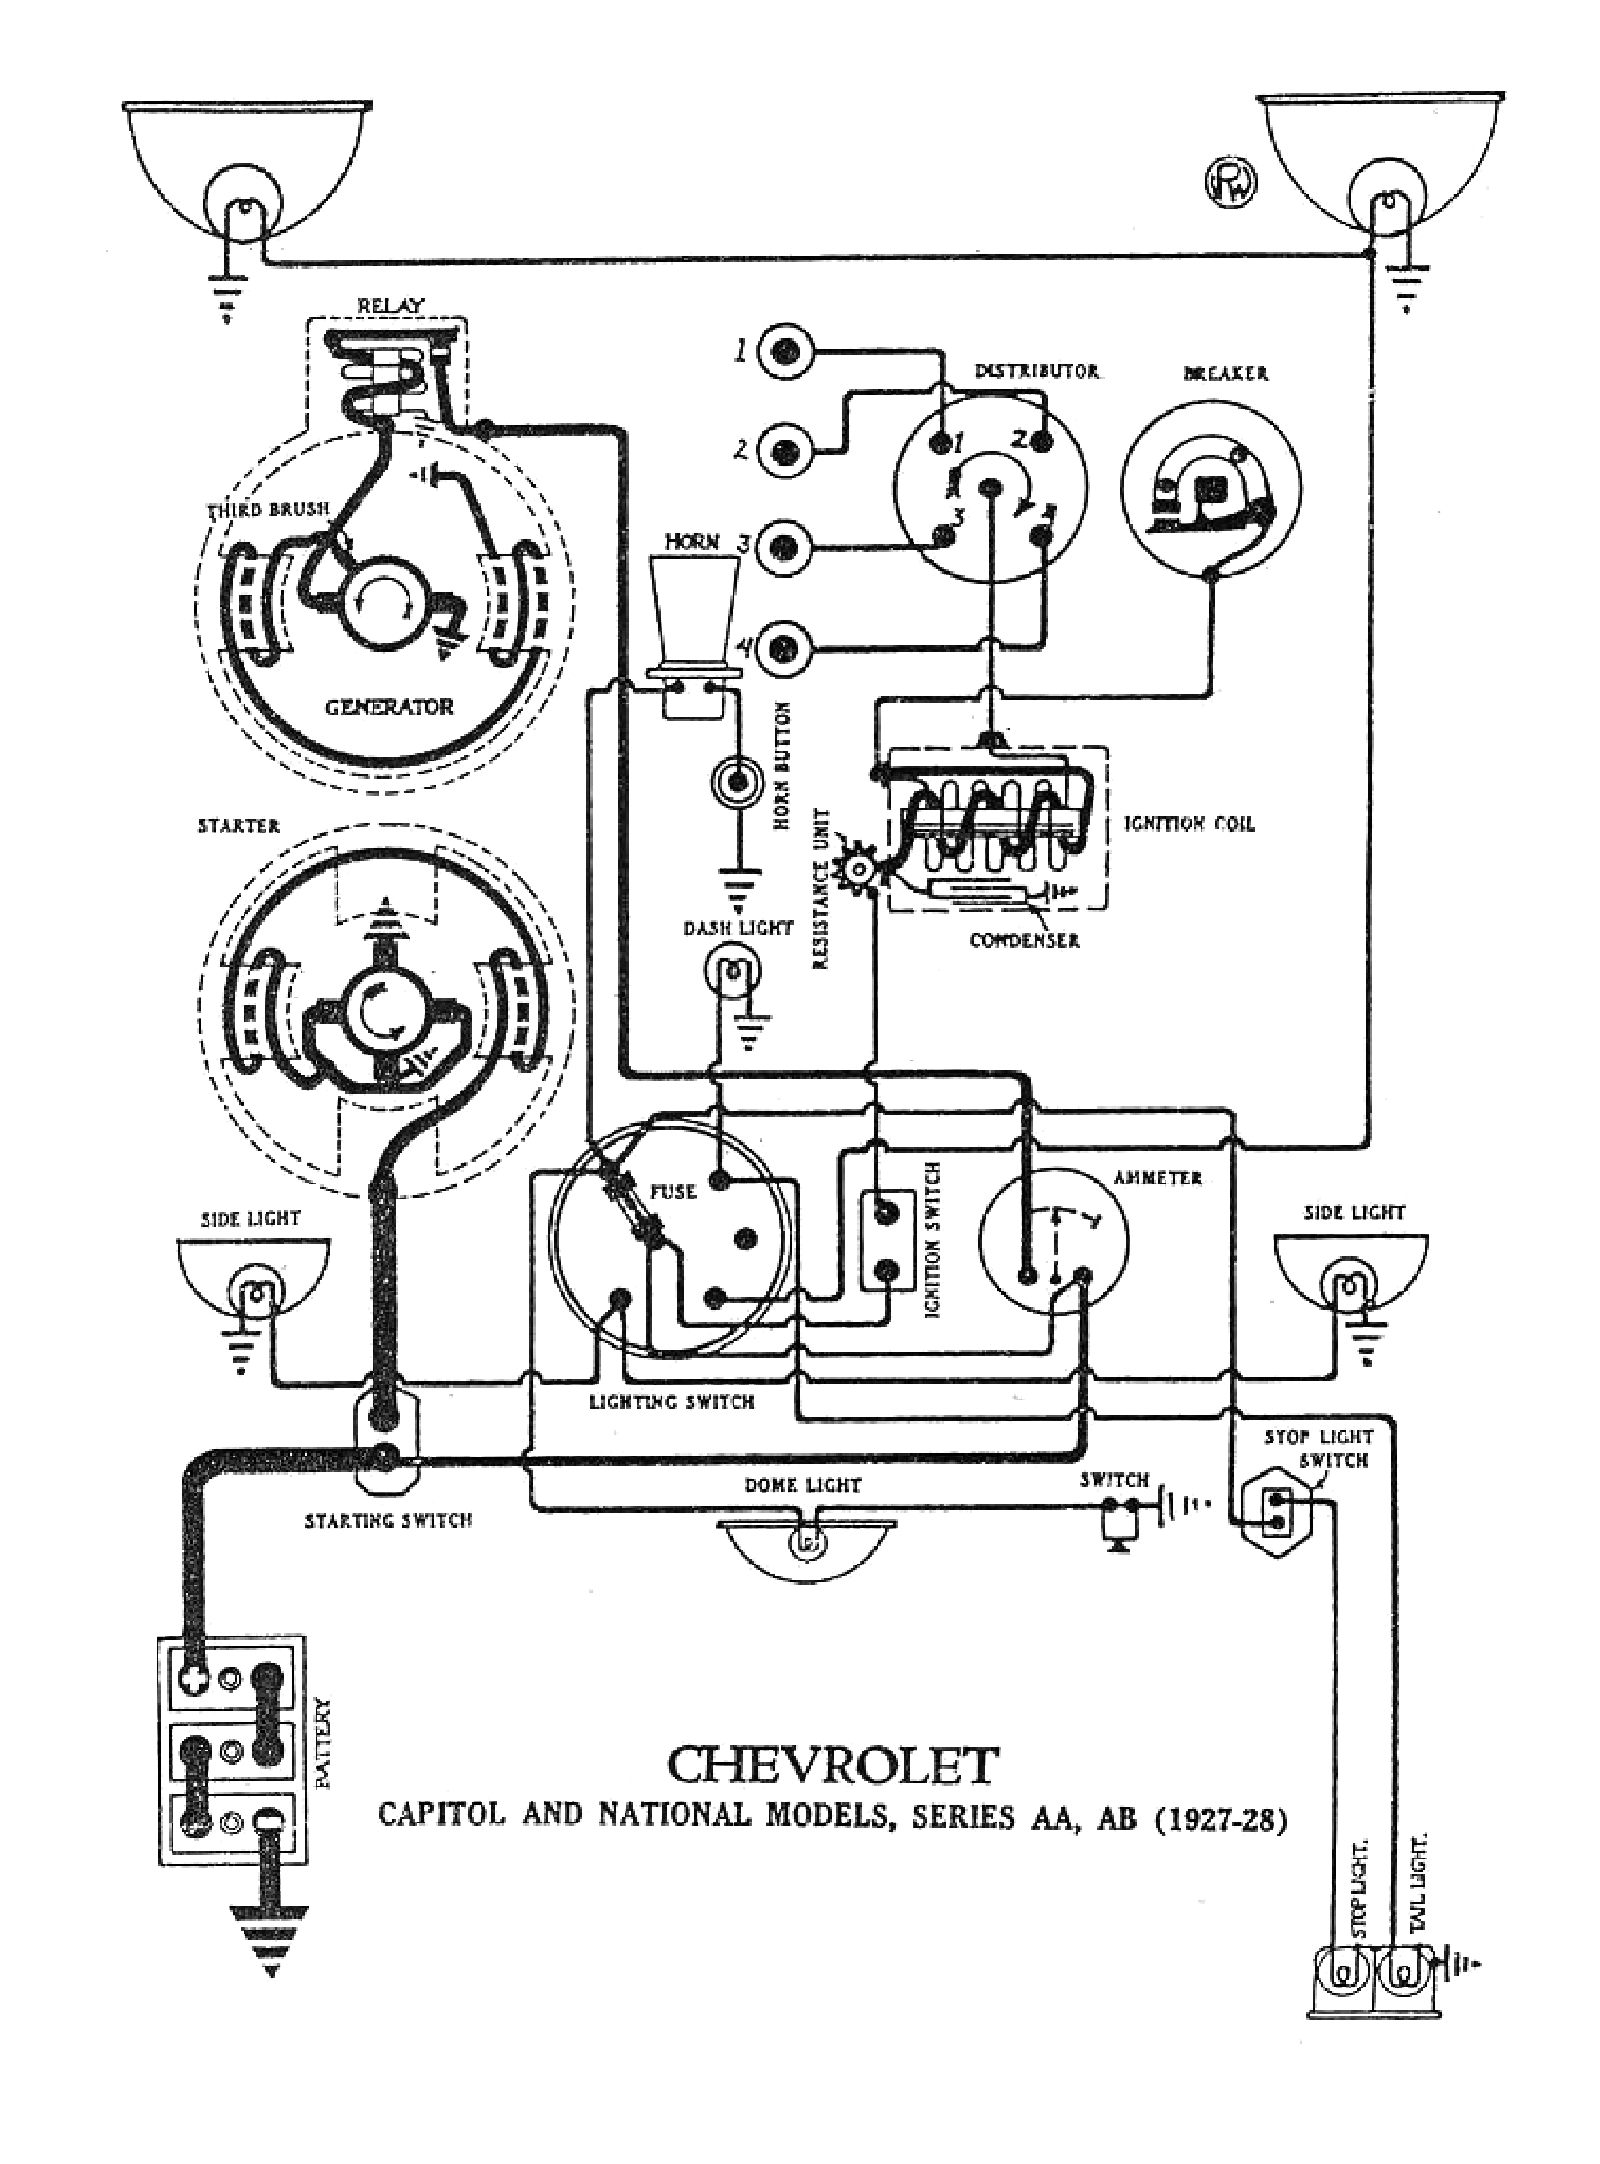 1969 C10 Oem Wiring Harness Free Download Diagram Data 1968 Pickup Chevrolet Diagrams Library